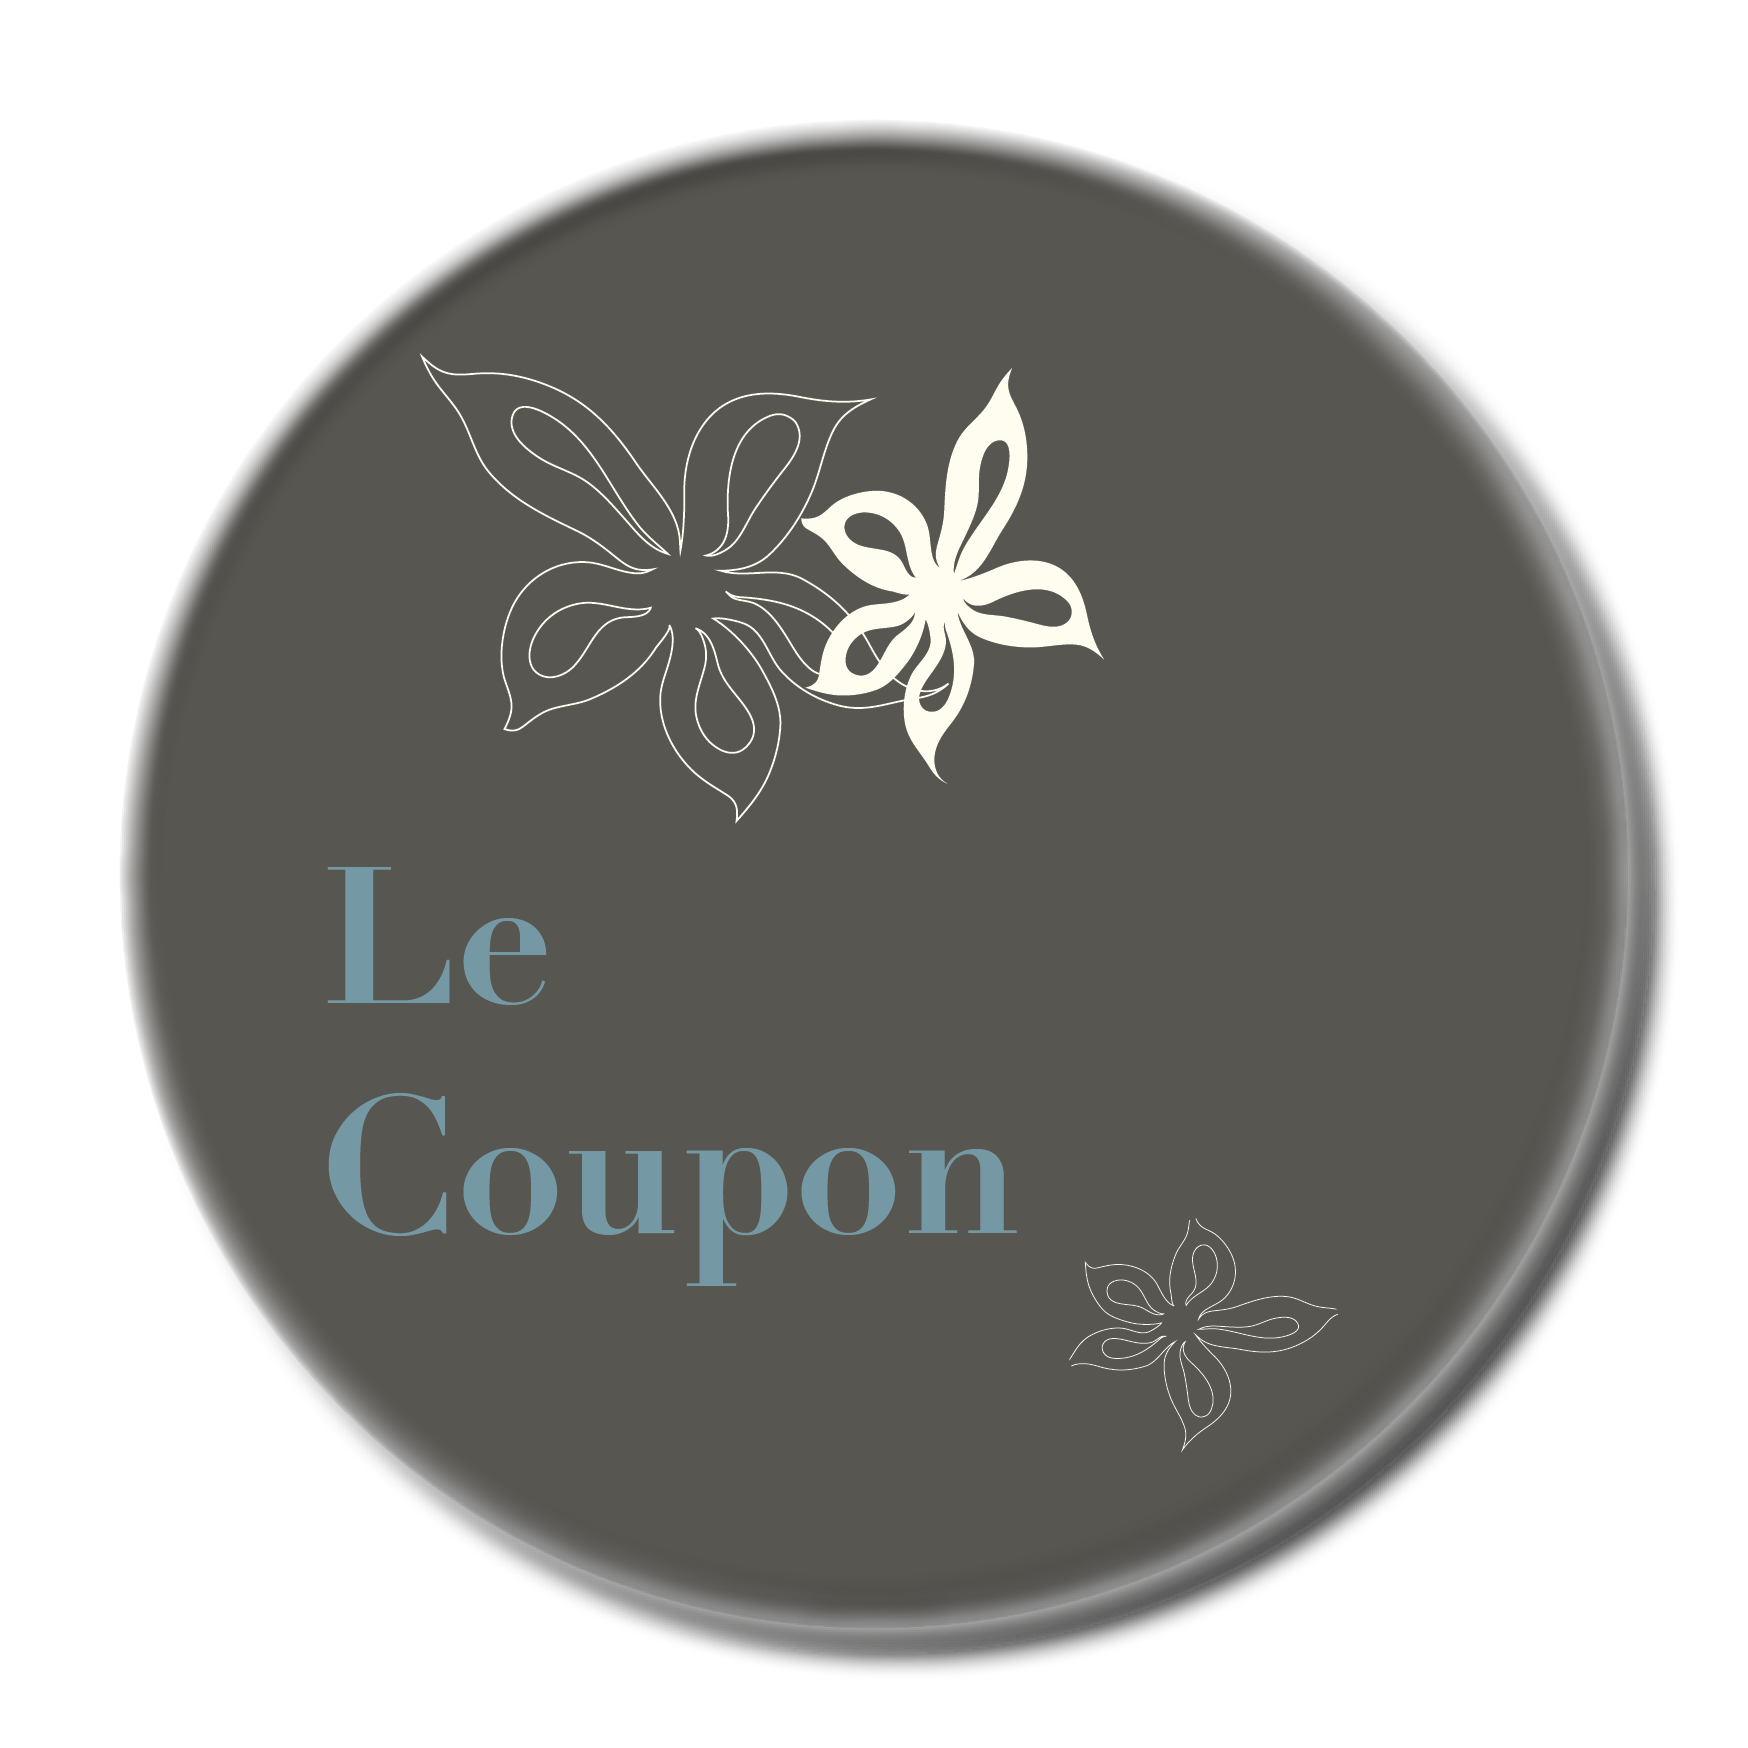 Le Coupon Stoffe